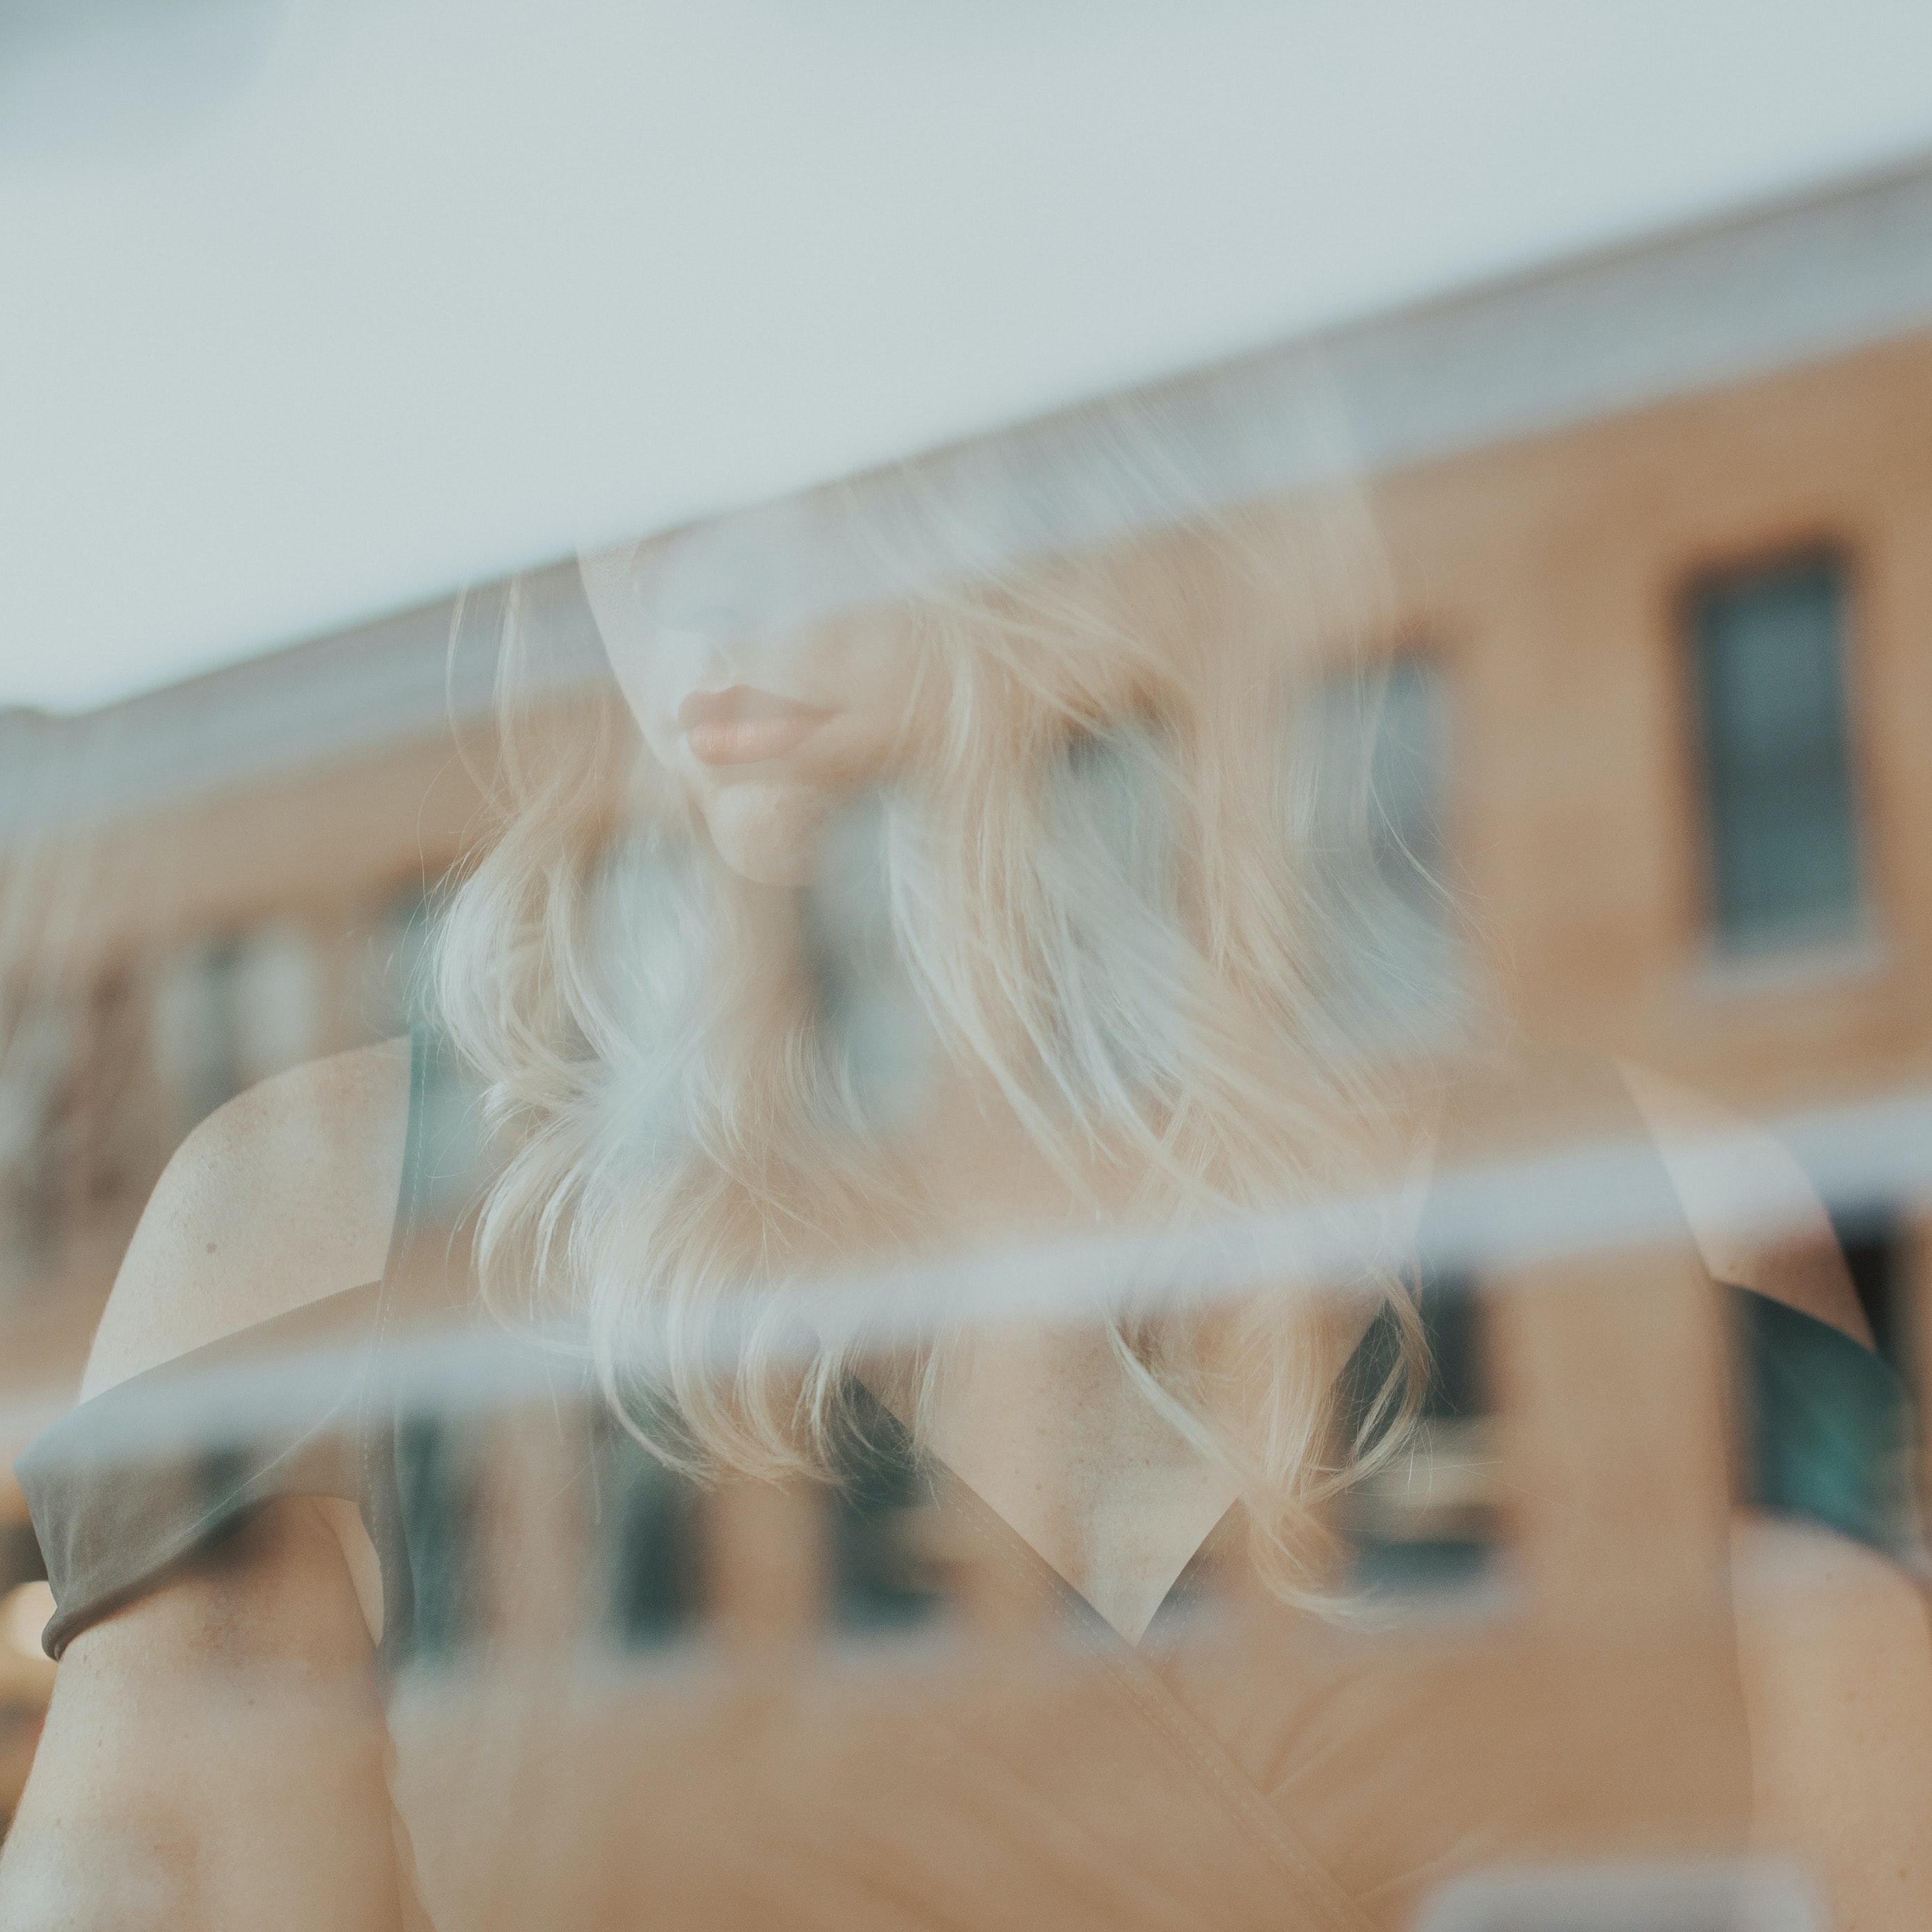 reflection of woman on glass